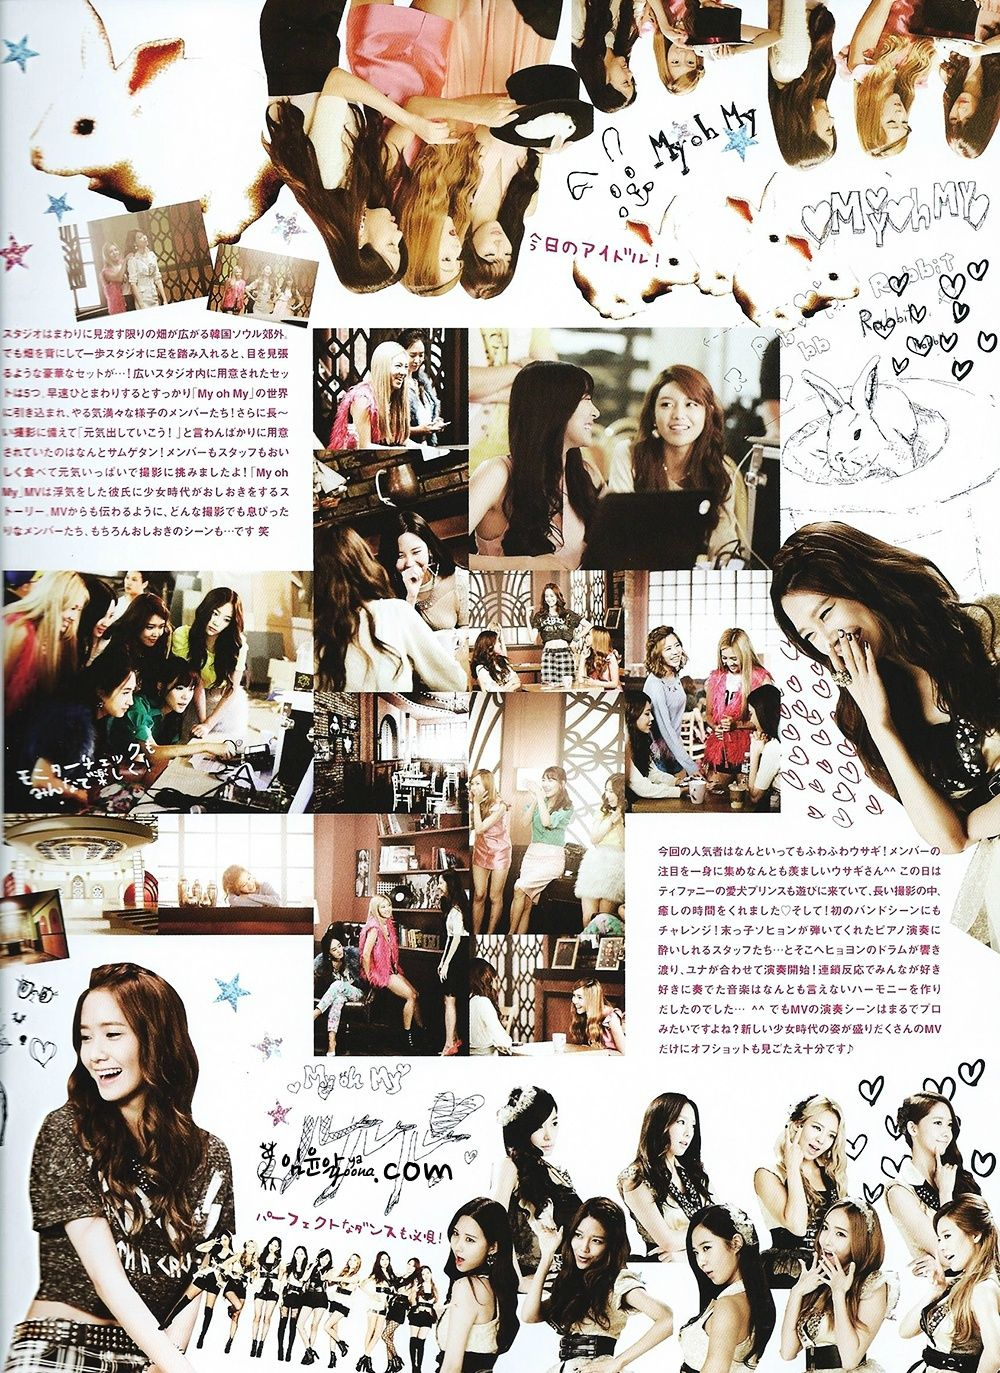 Sone snsd quotes o - Snsd Girls Generation Sooyoung Sone Note Vol 3 Snsd Girls Generation Pinterest Girls Chang E 3 And Note